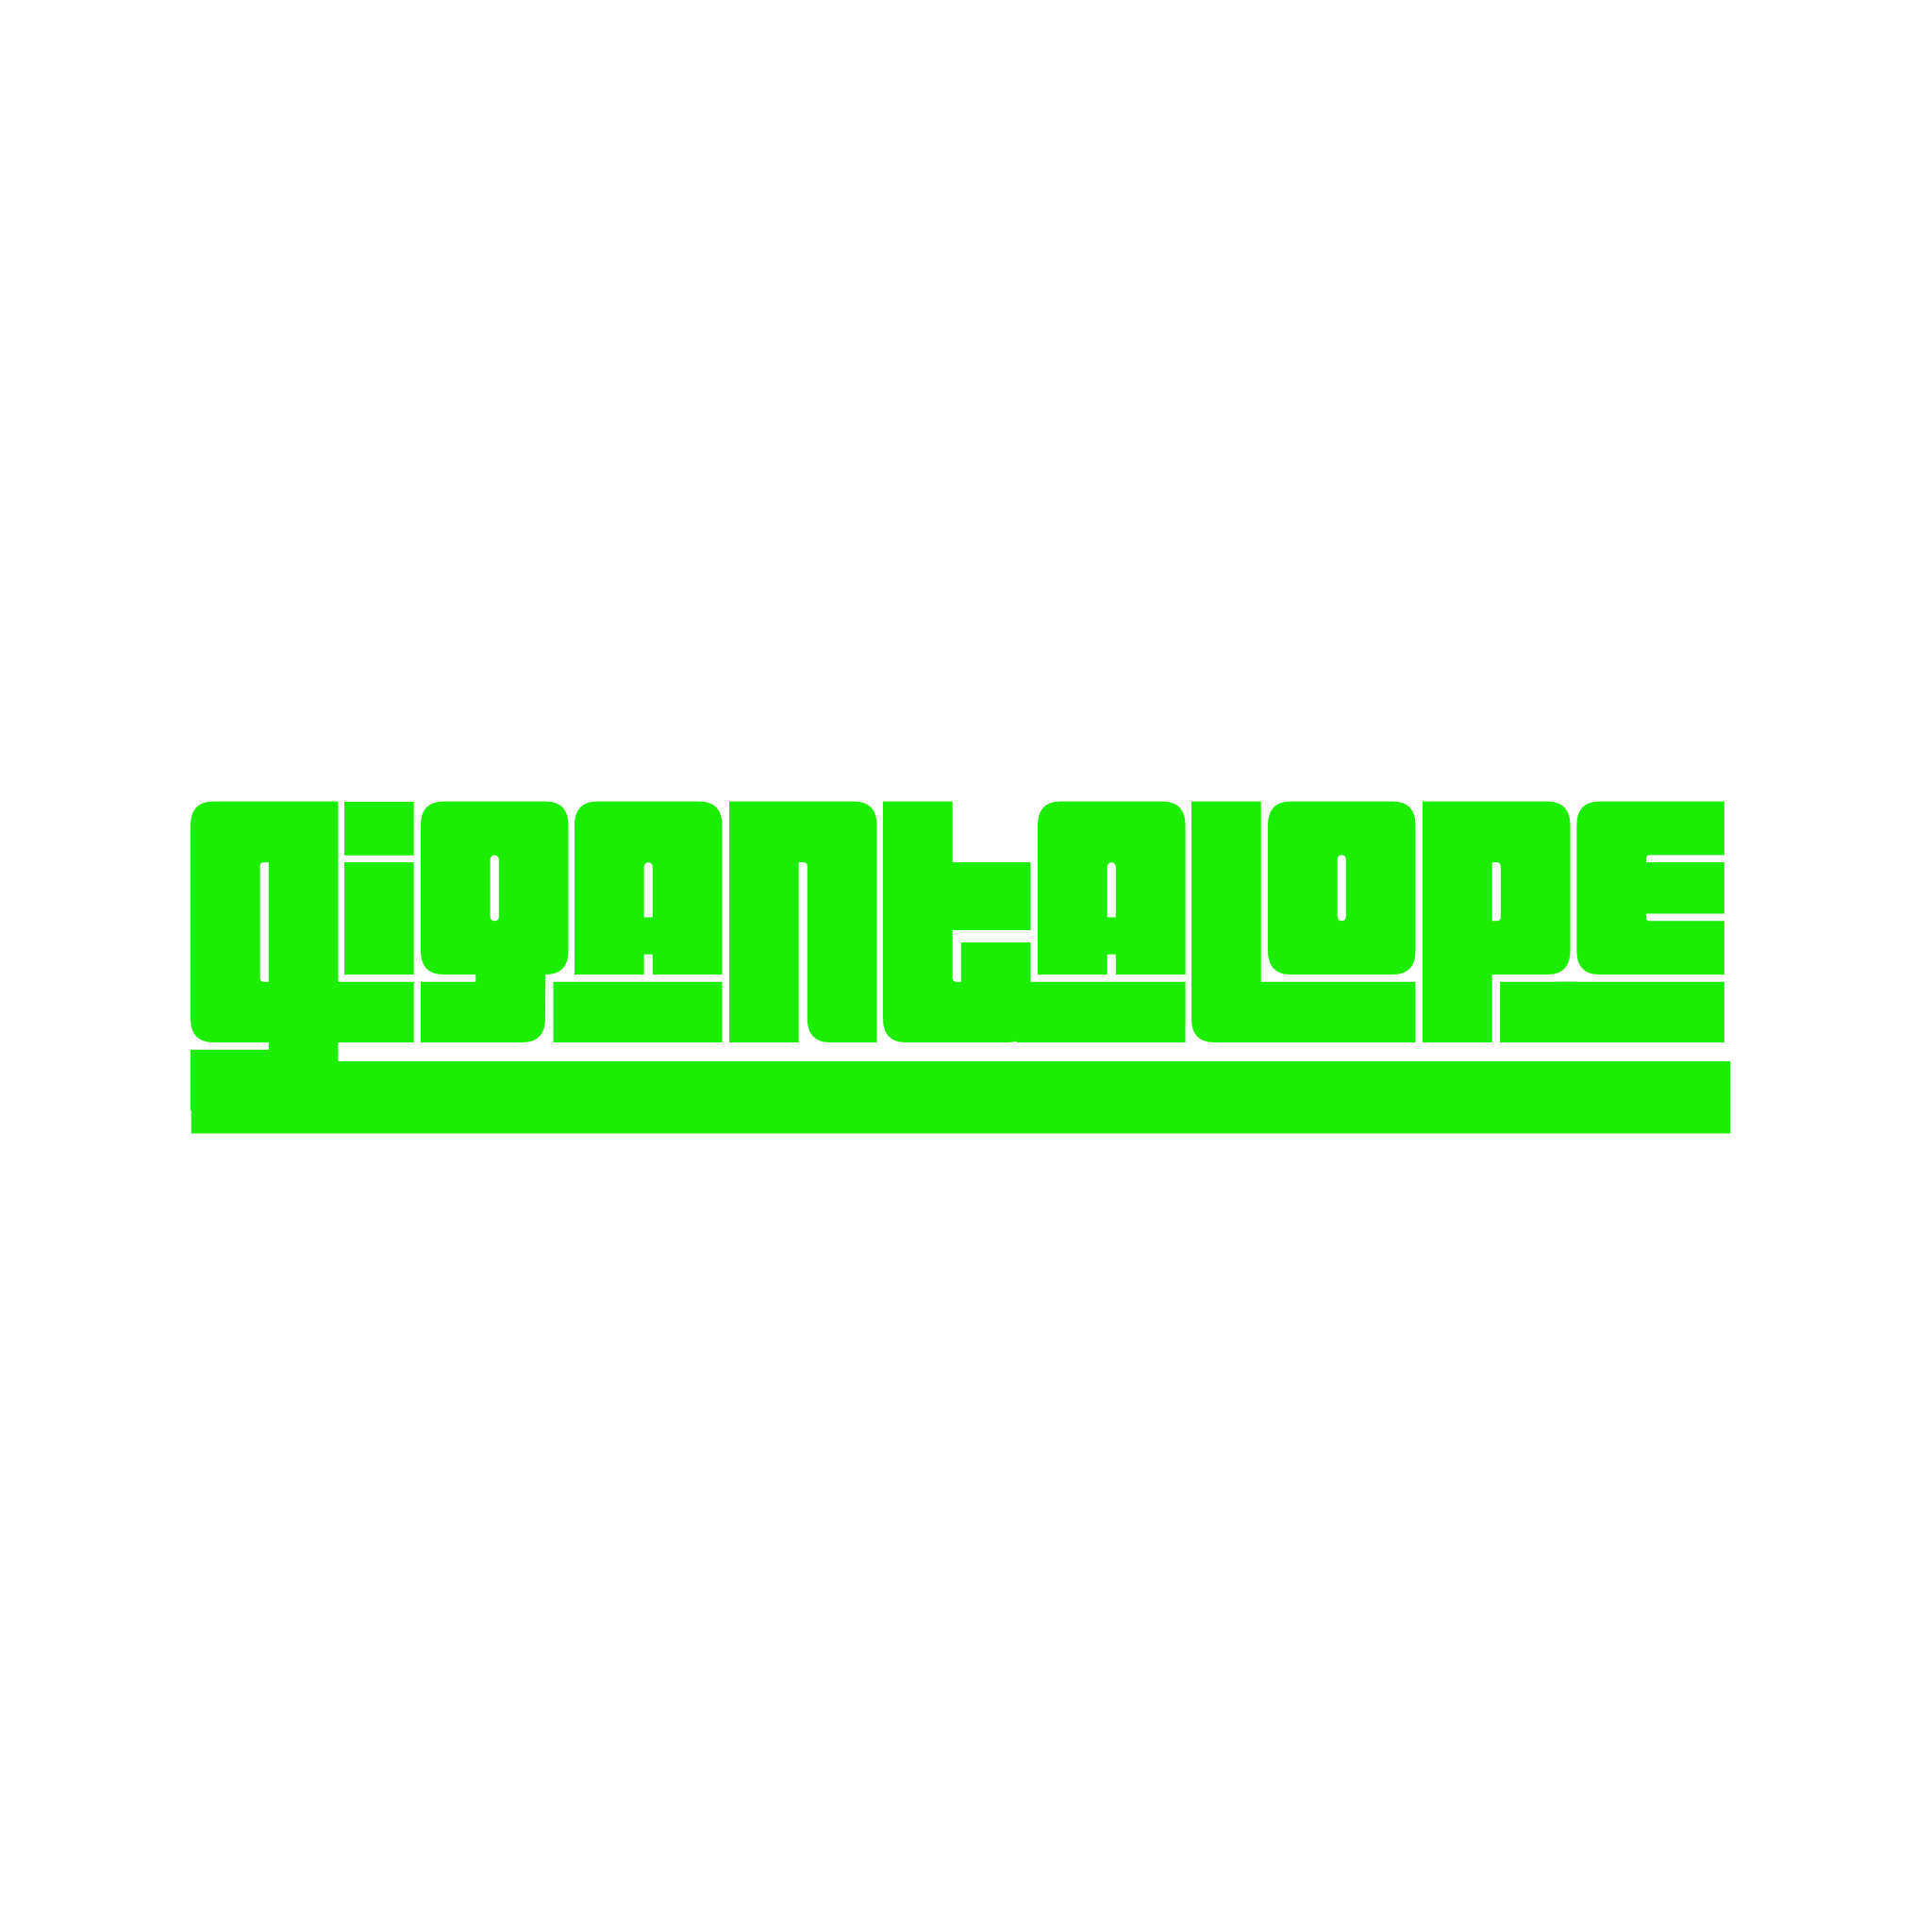 Gigantalope green logo GTA copy.png